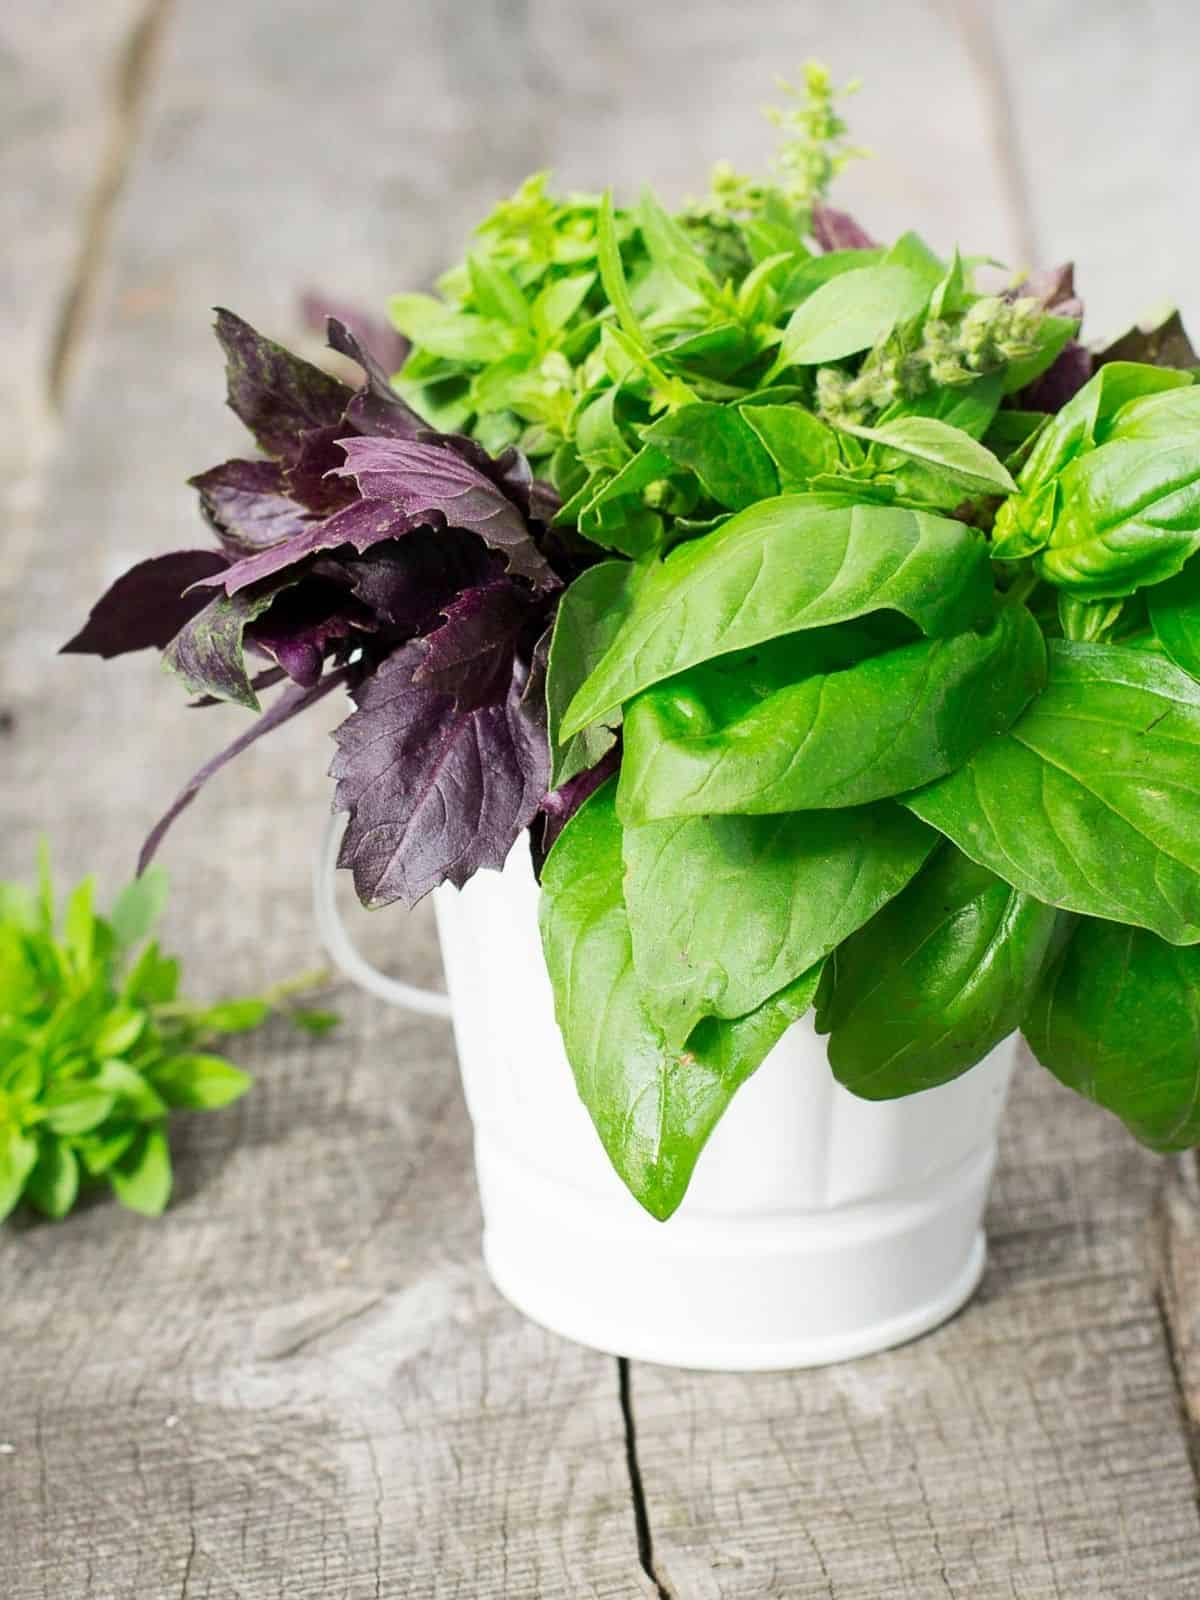 BASIL VARIETIES IN A WHITE POT